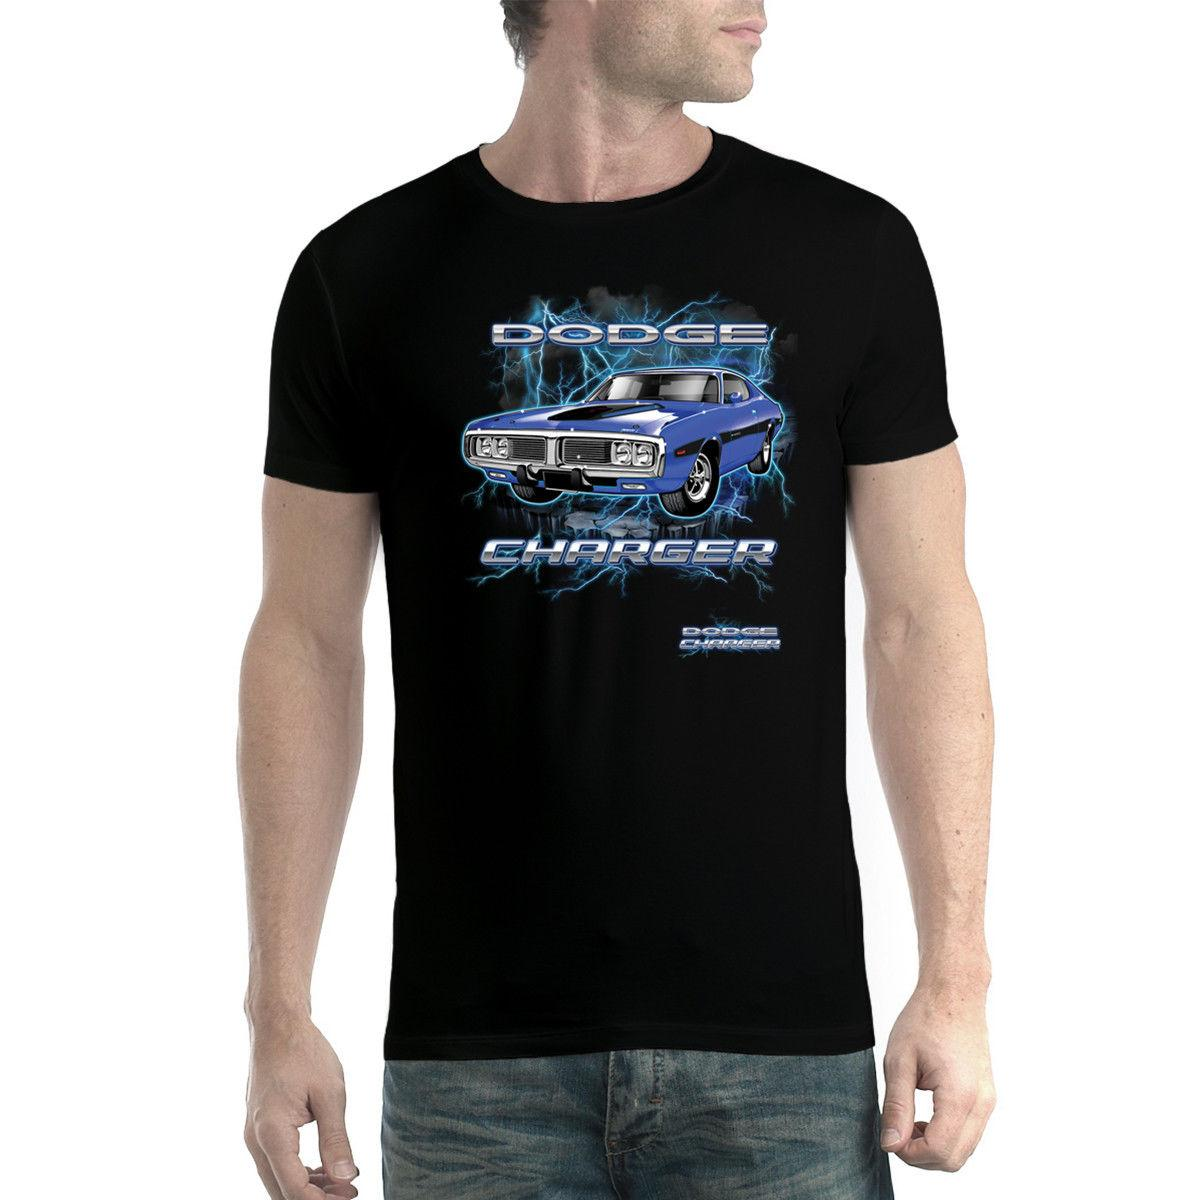 80063d6e Dodge Charger Classic Car Men T Shirt XS 5XL Funny Unisex Casual Tshirt  Funny Team Shirts Trendy T Shirts For Men From Blue_water, $12.96|  DHgate.Com